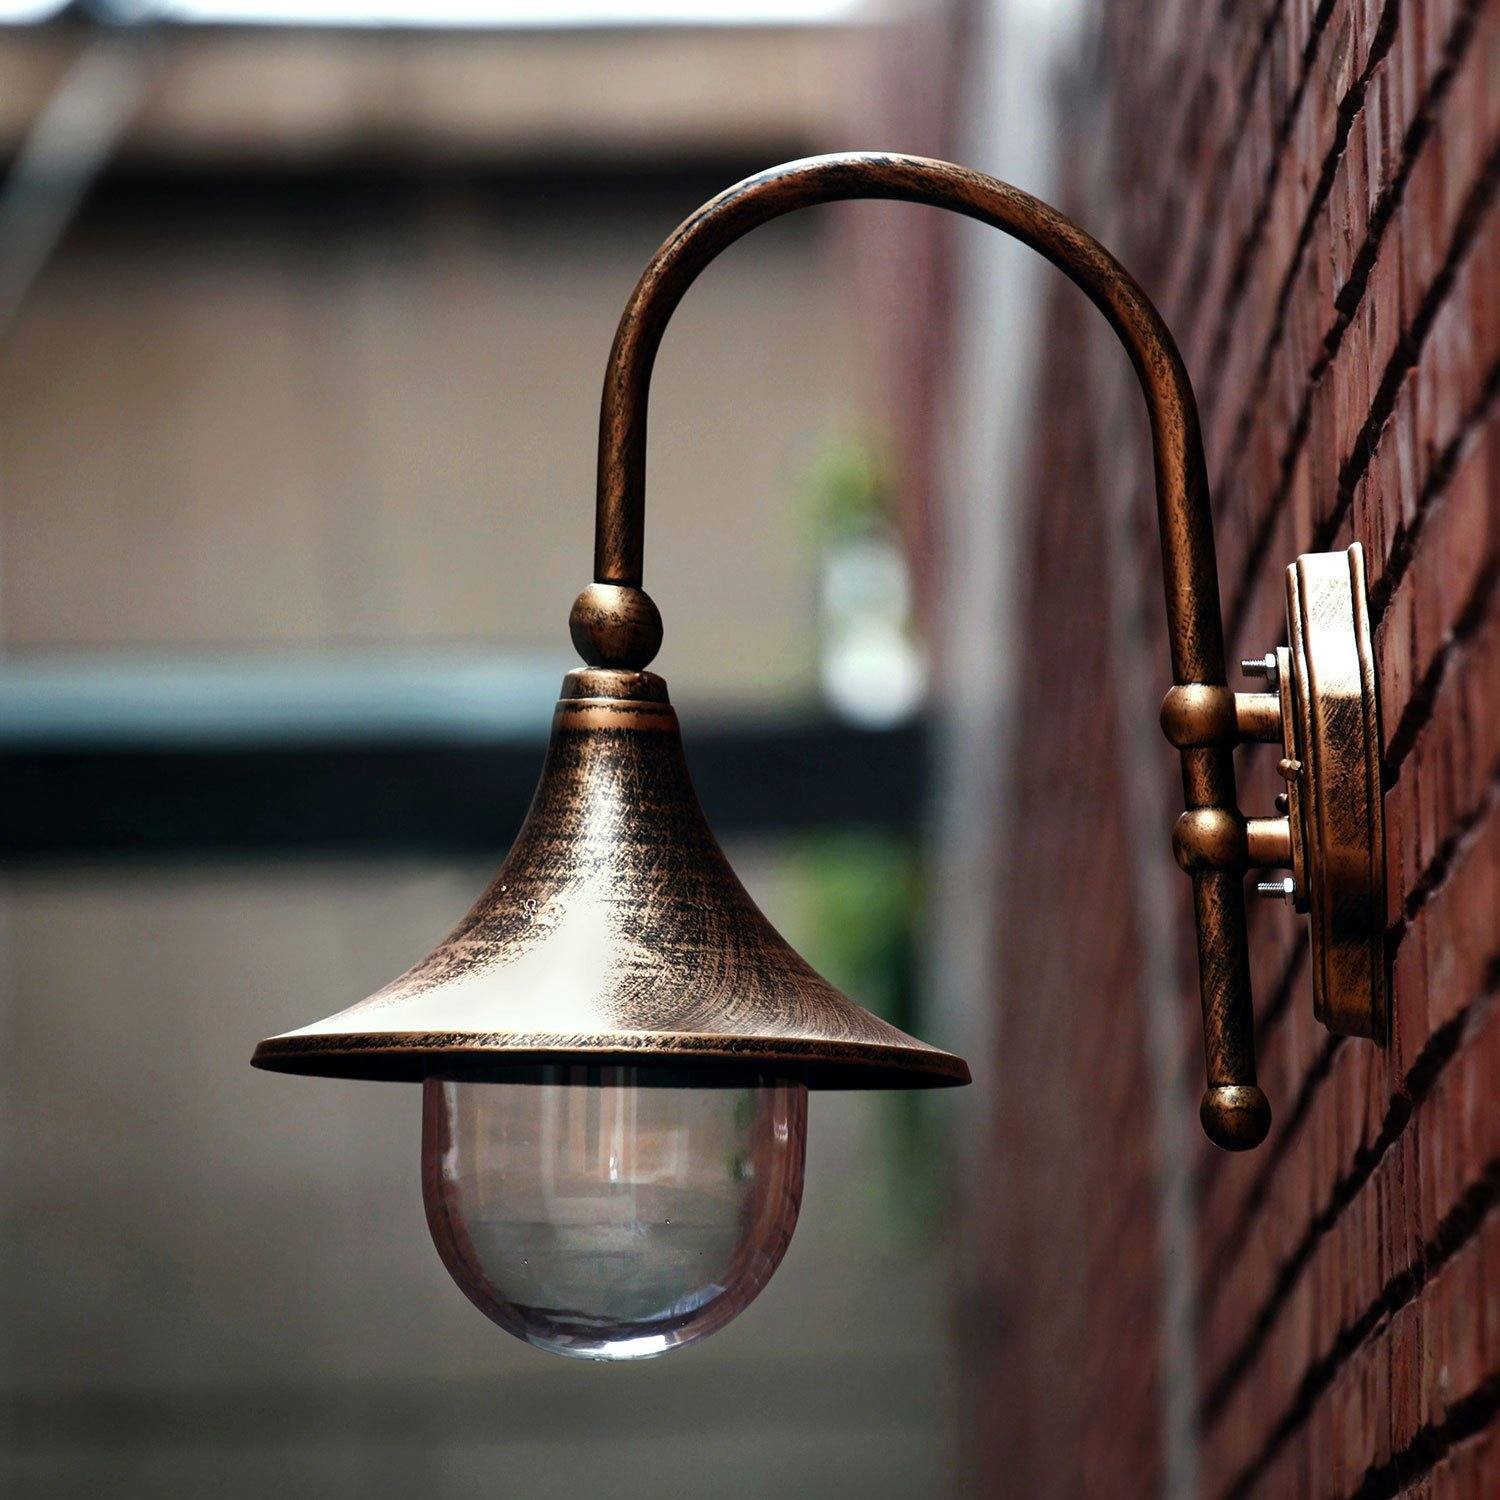 35 striking outdoor lighting ideas and